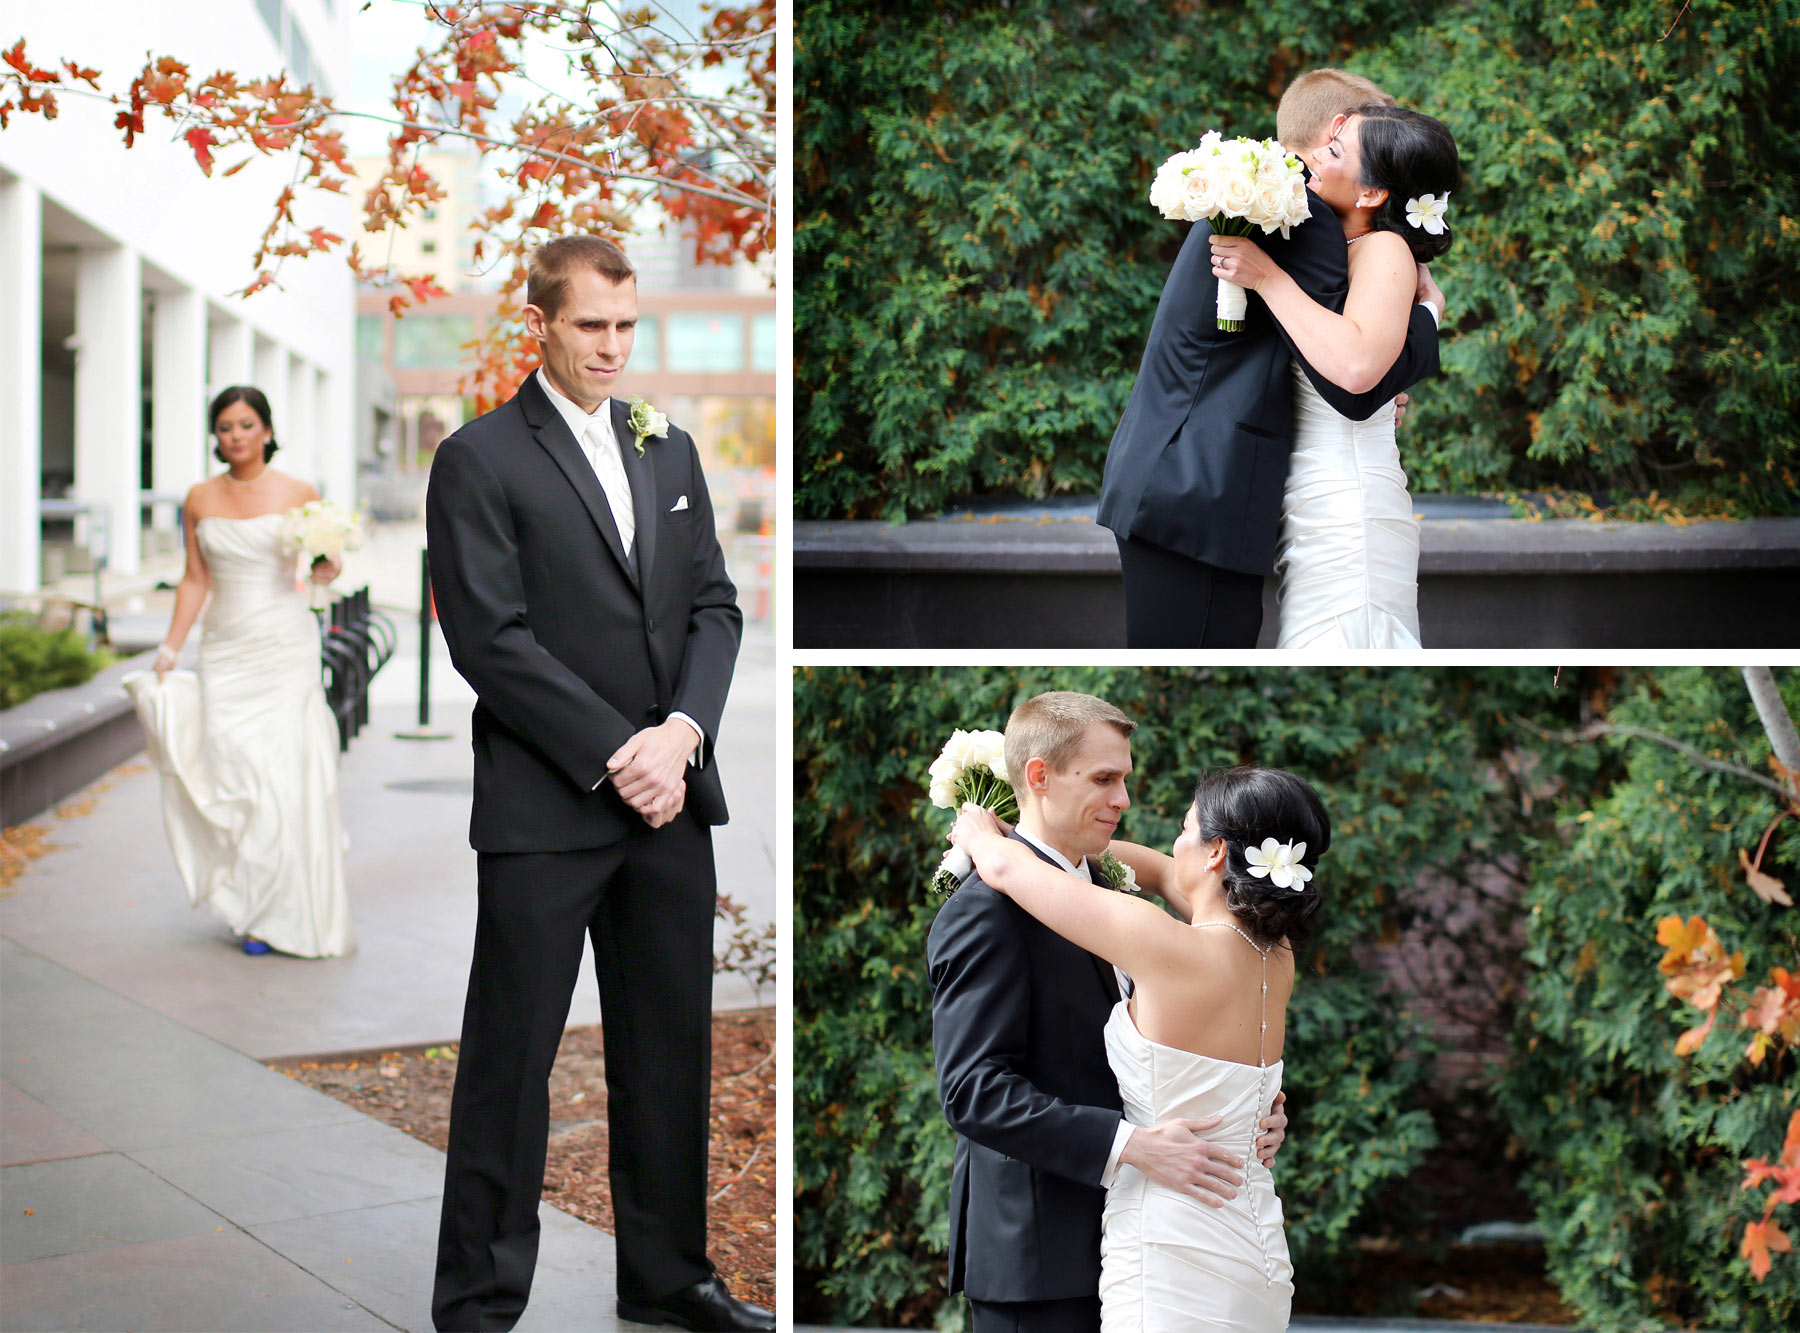 06-Minneapolis-Minnesota-Wedding-Photographer-by-Andrew-Vick-Photography-Fall-Autumn-Millennium-Hotel-First-Look-Meeting-Bride-Groom-Hug-Embrace-Flowers-Amanda-and-Cary.jpg